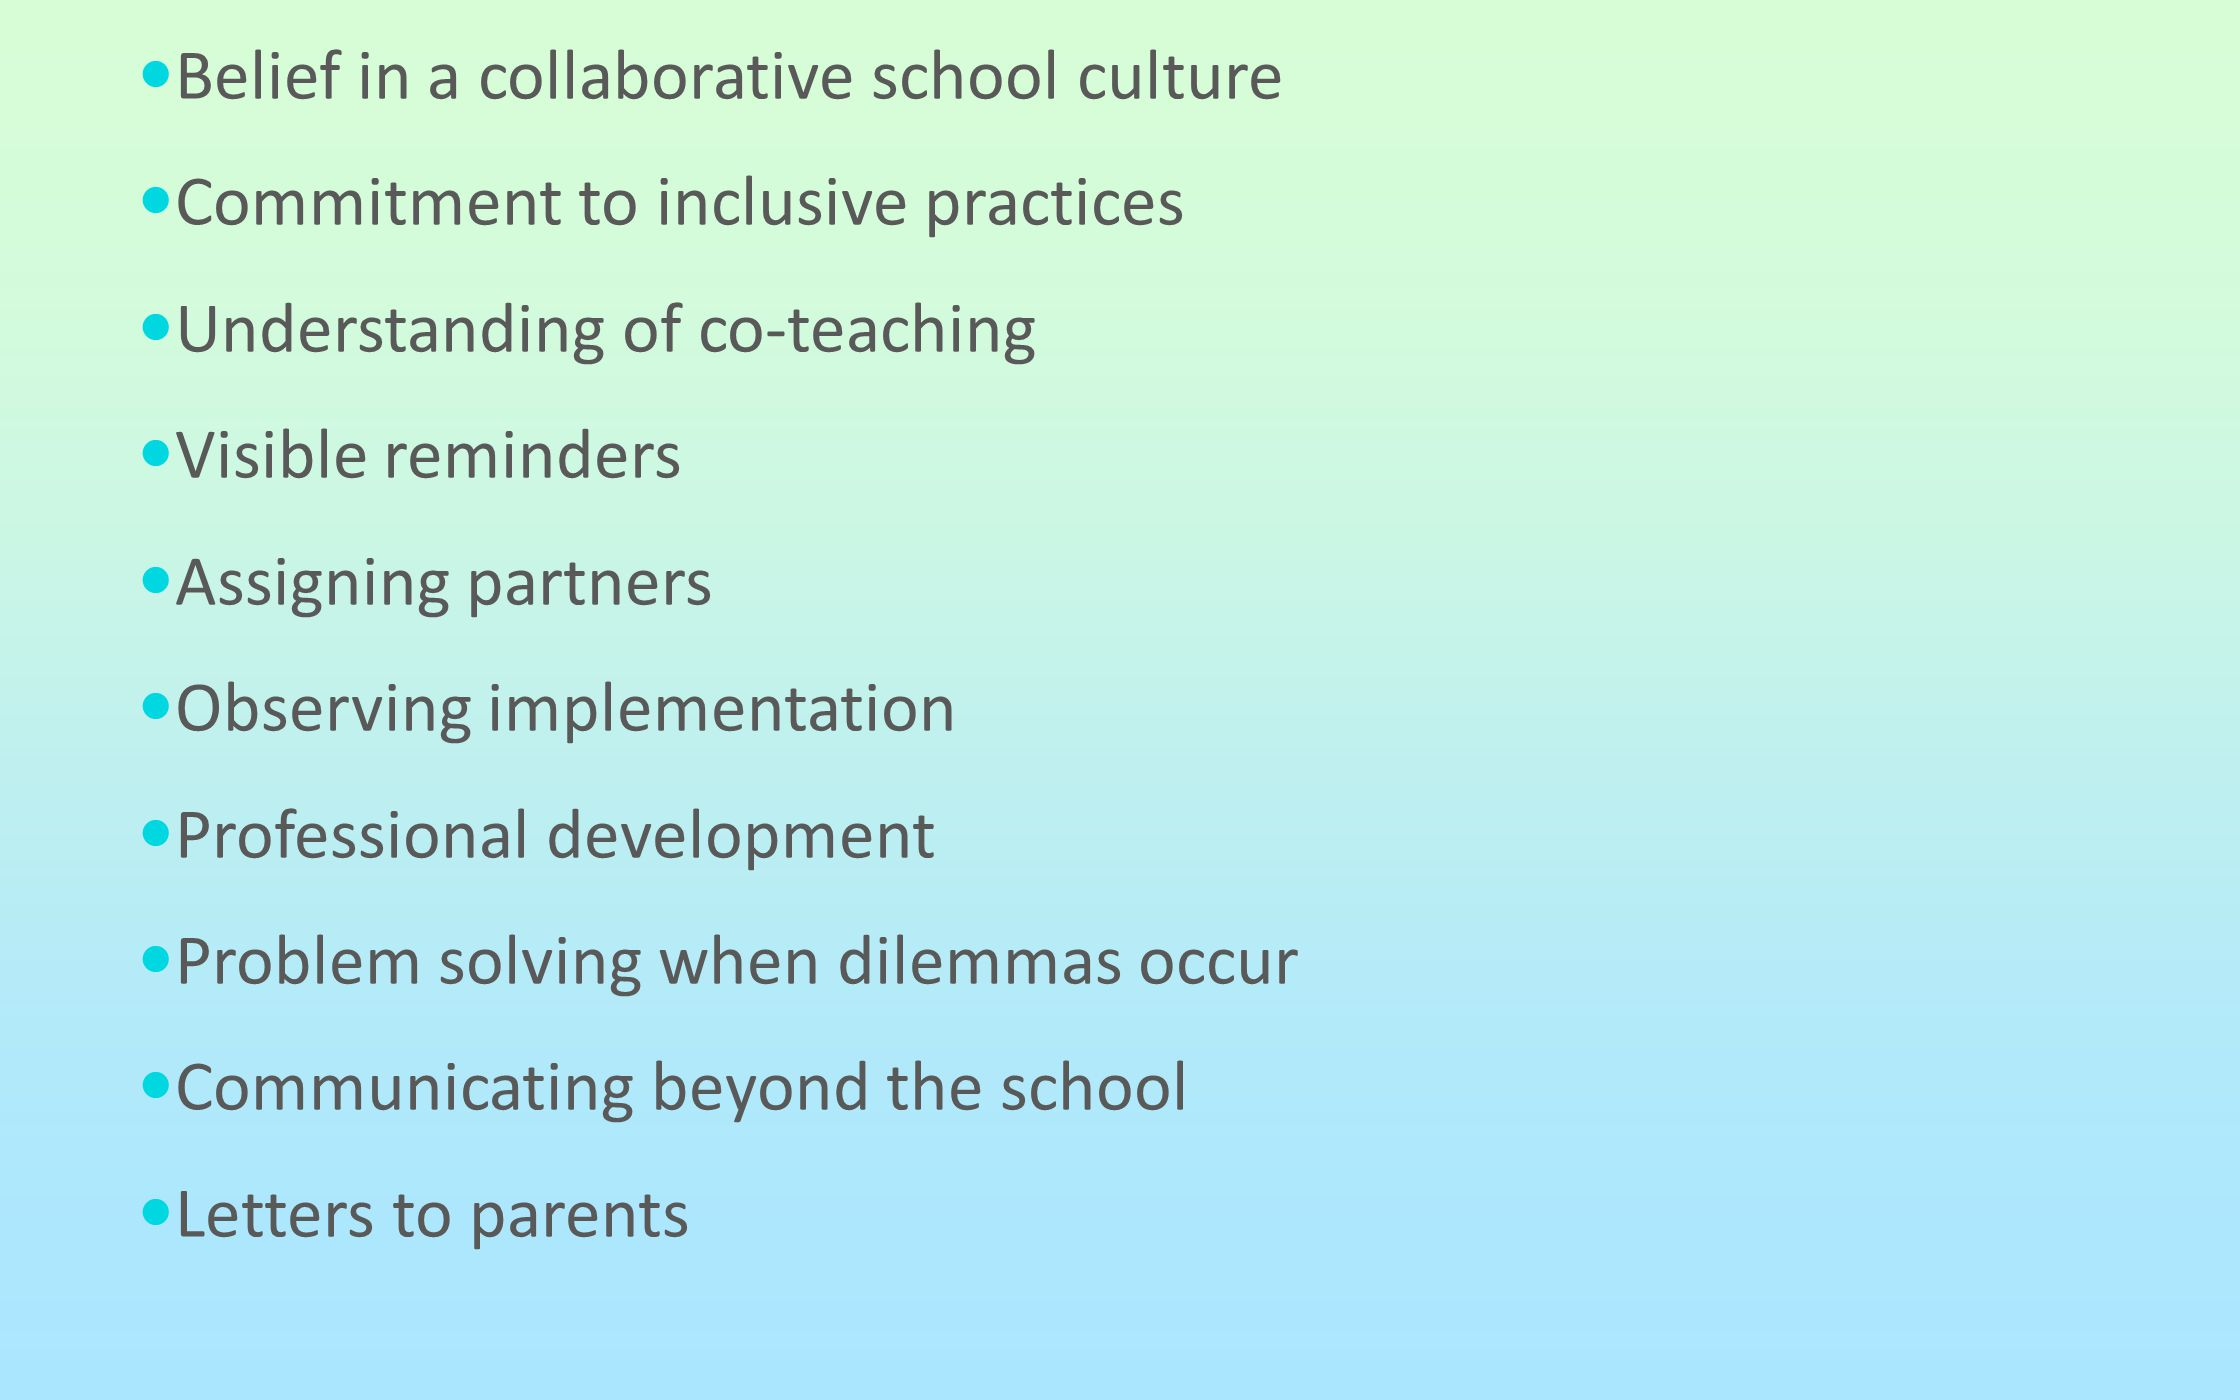 Belief in a collaborative school culture